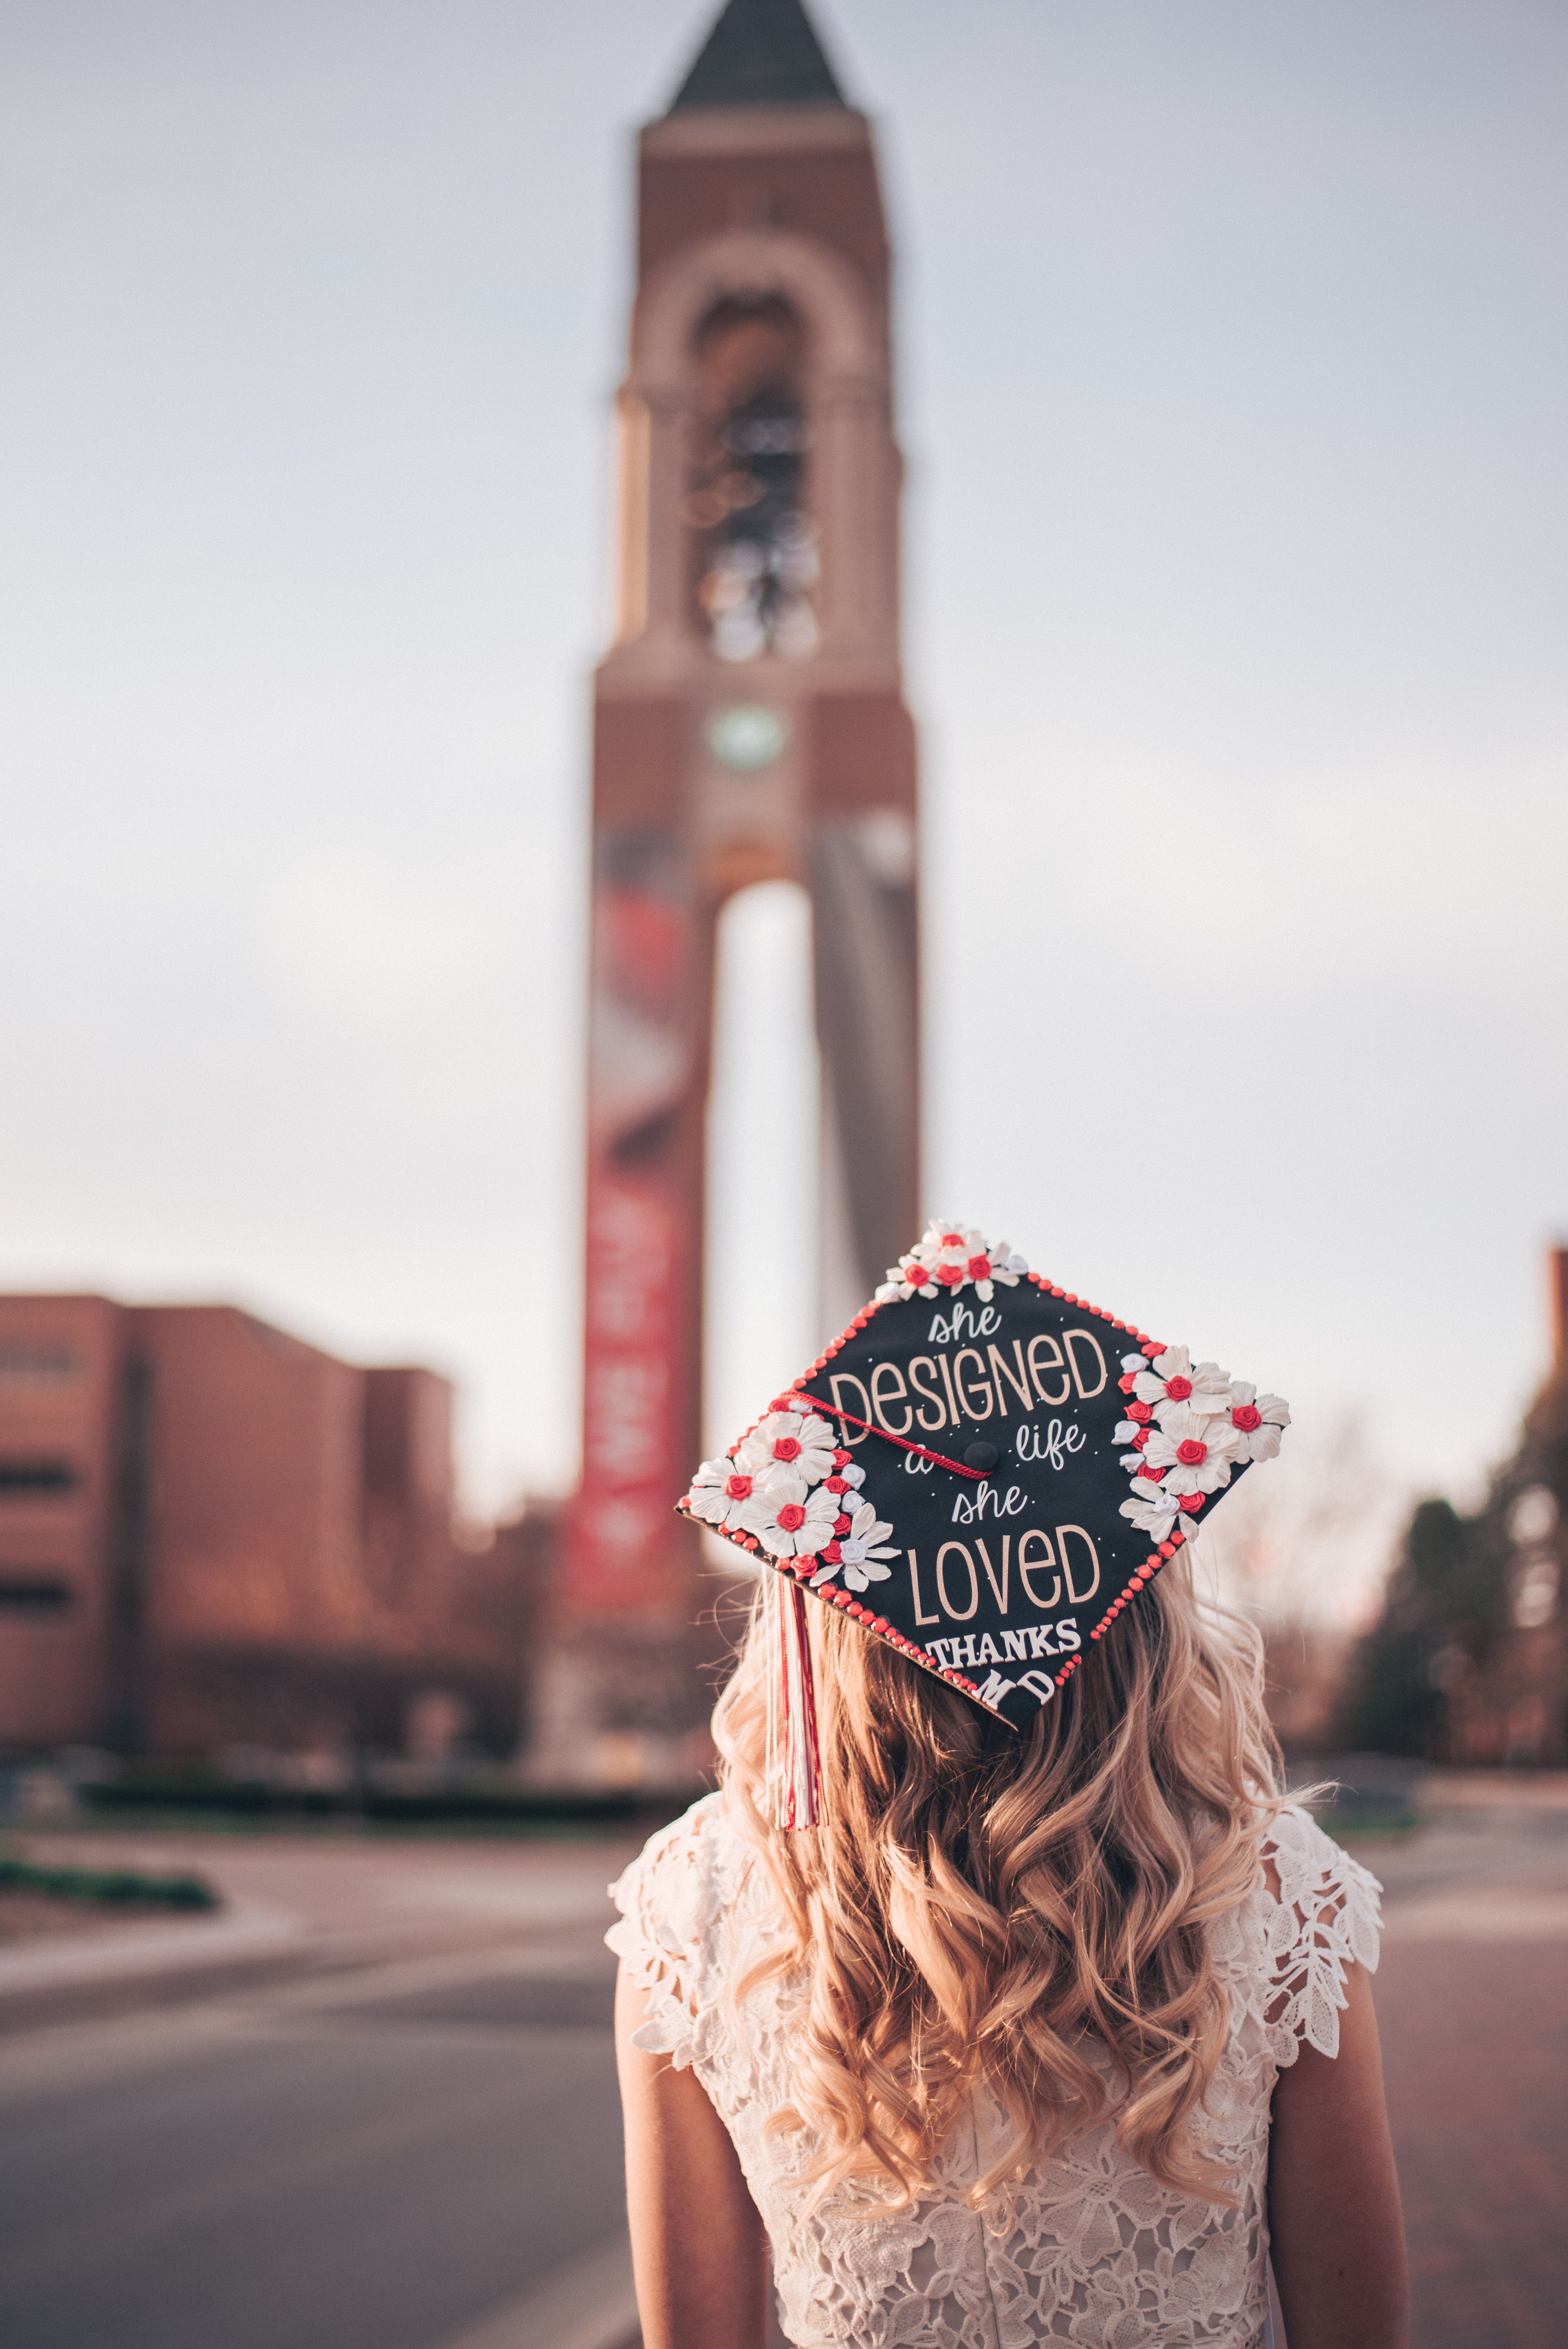 Ball State University - Graduation 2018 Pictures - Kaleigh Friesen Photography - Senior Pictures - College Photoshoot - Grad Cap